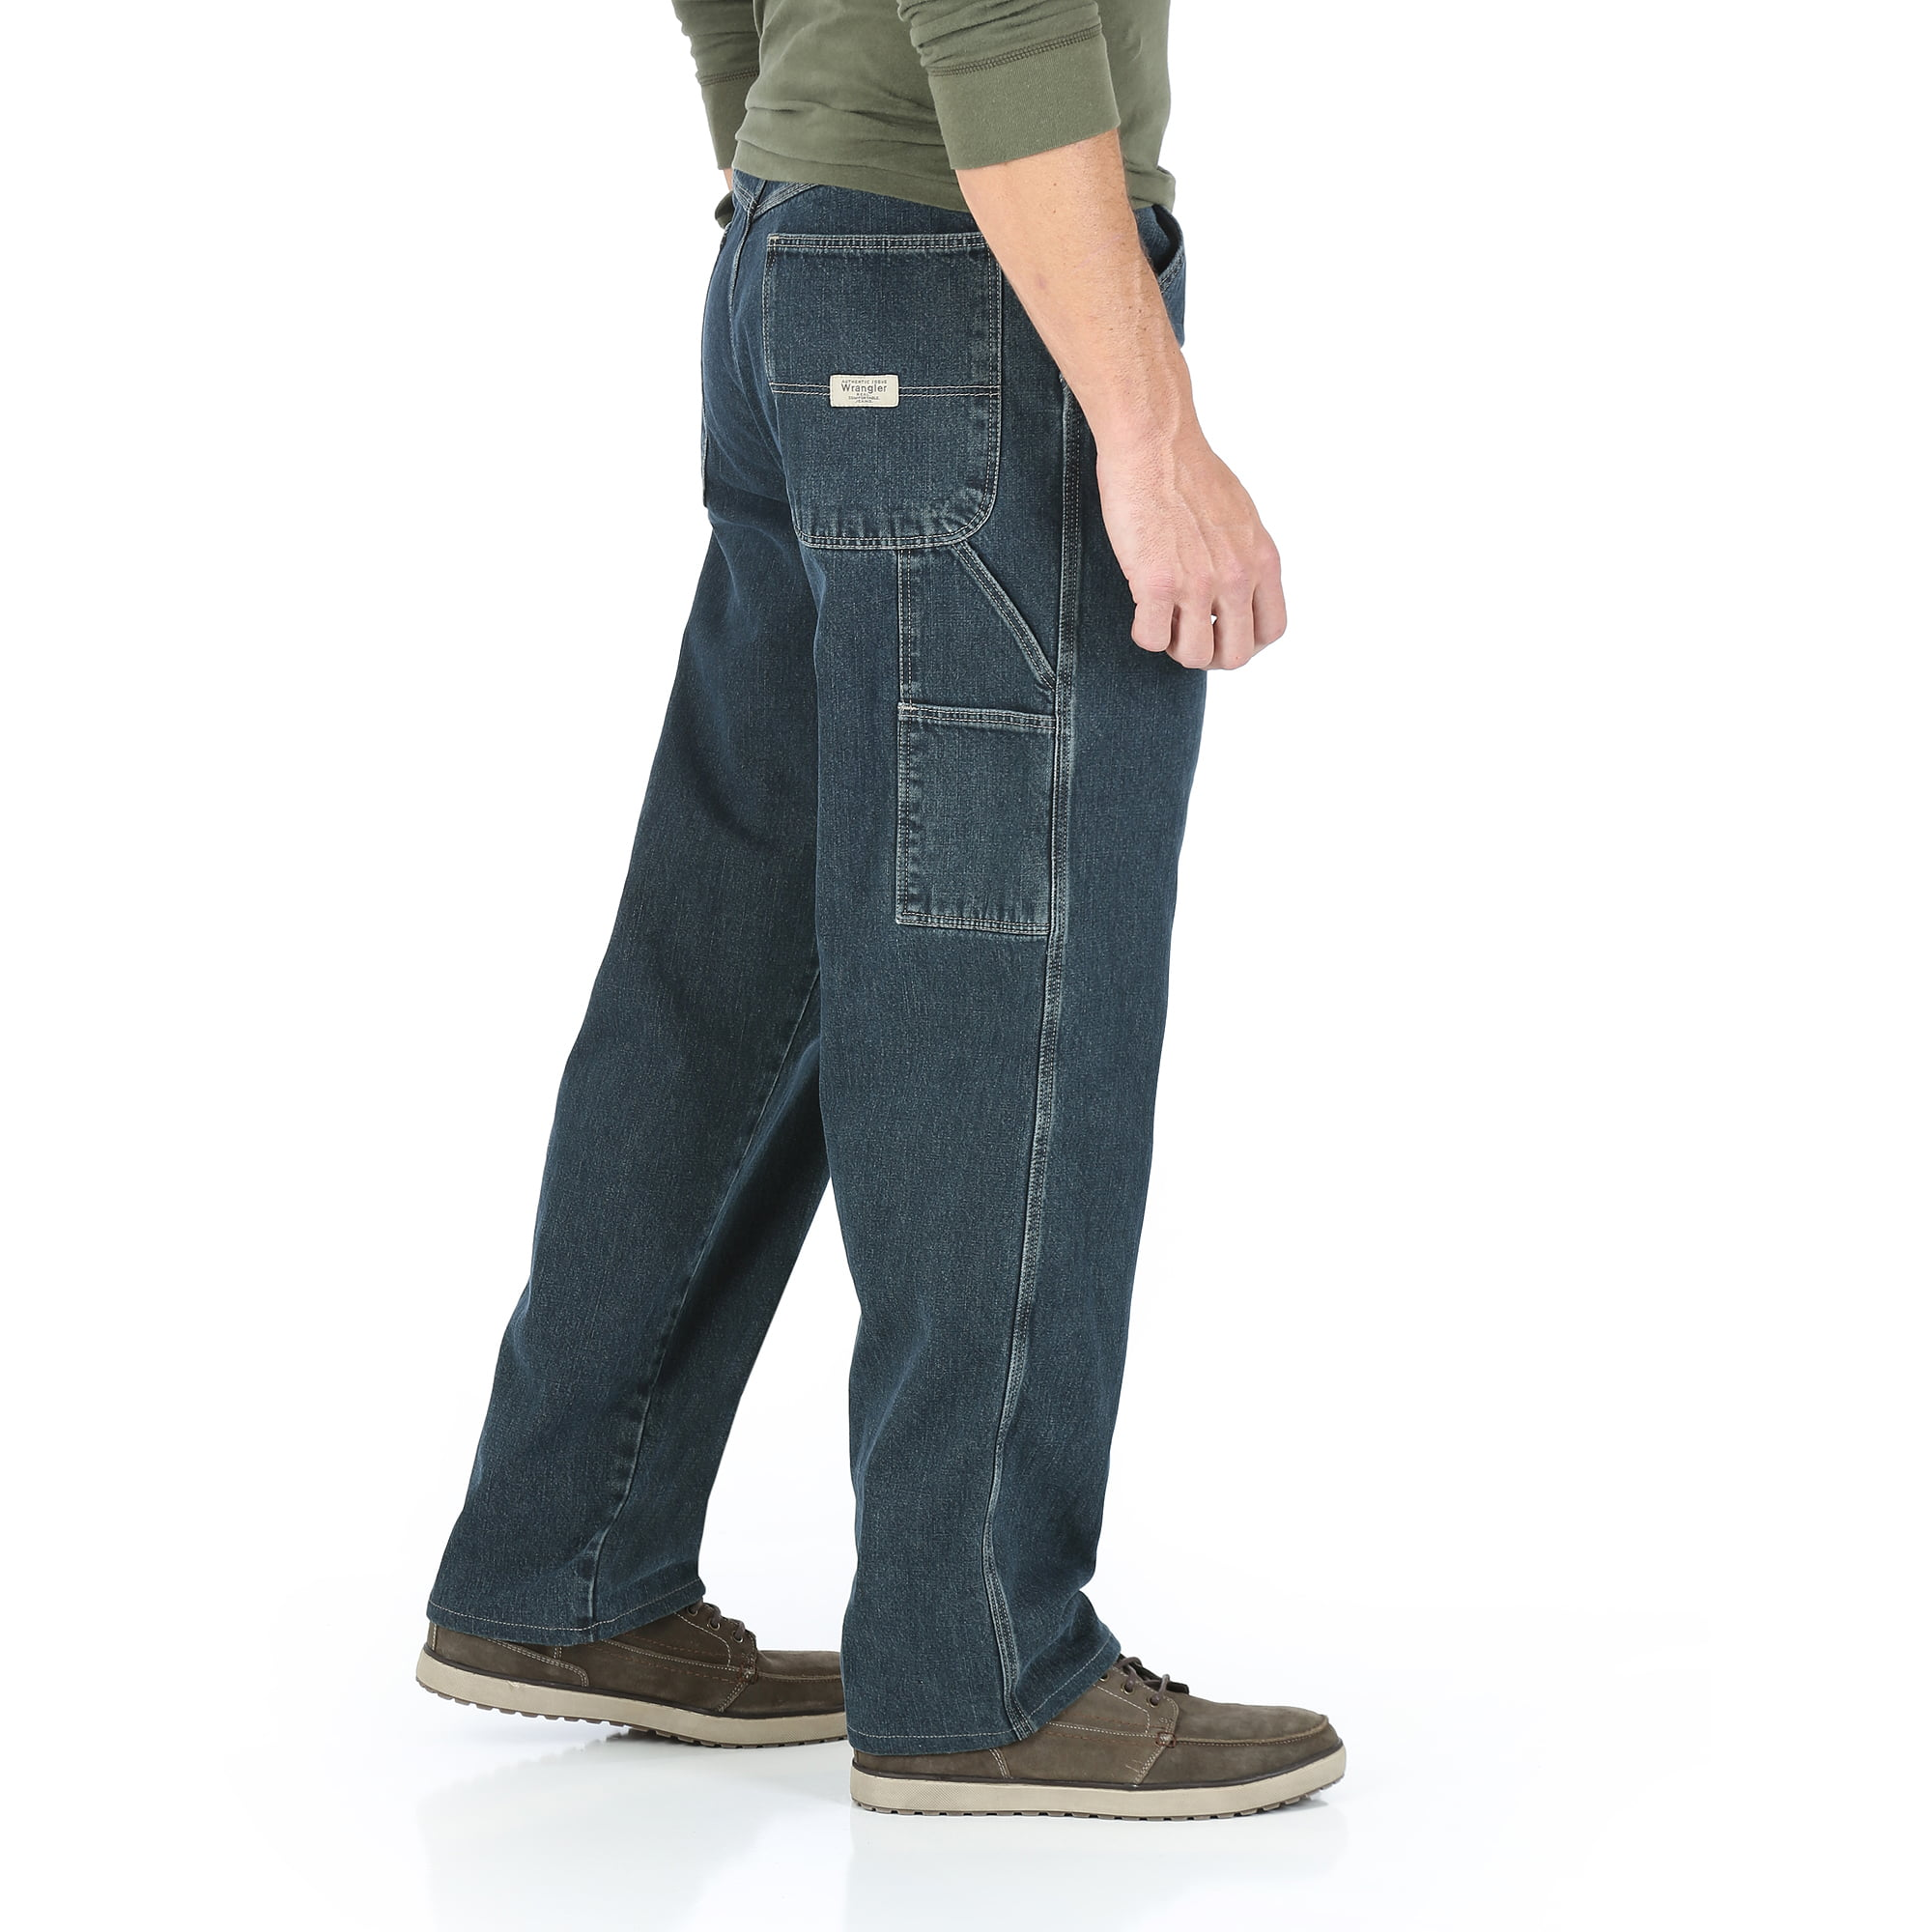 A great carpenter jean is about more than a hammer loop. Our U-Shape constructed jeans are made for comfort! Why don't your company distributed black carpenter relax fit jeans for mens. Asked on 3/4/ by Craig from Saginaw mi 2 answers. A: I would also like to find carpenter jeans in black! Answered on 7/23/ by 4/4().